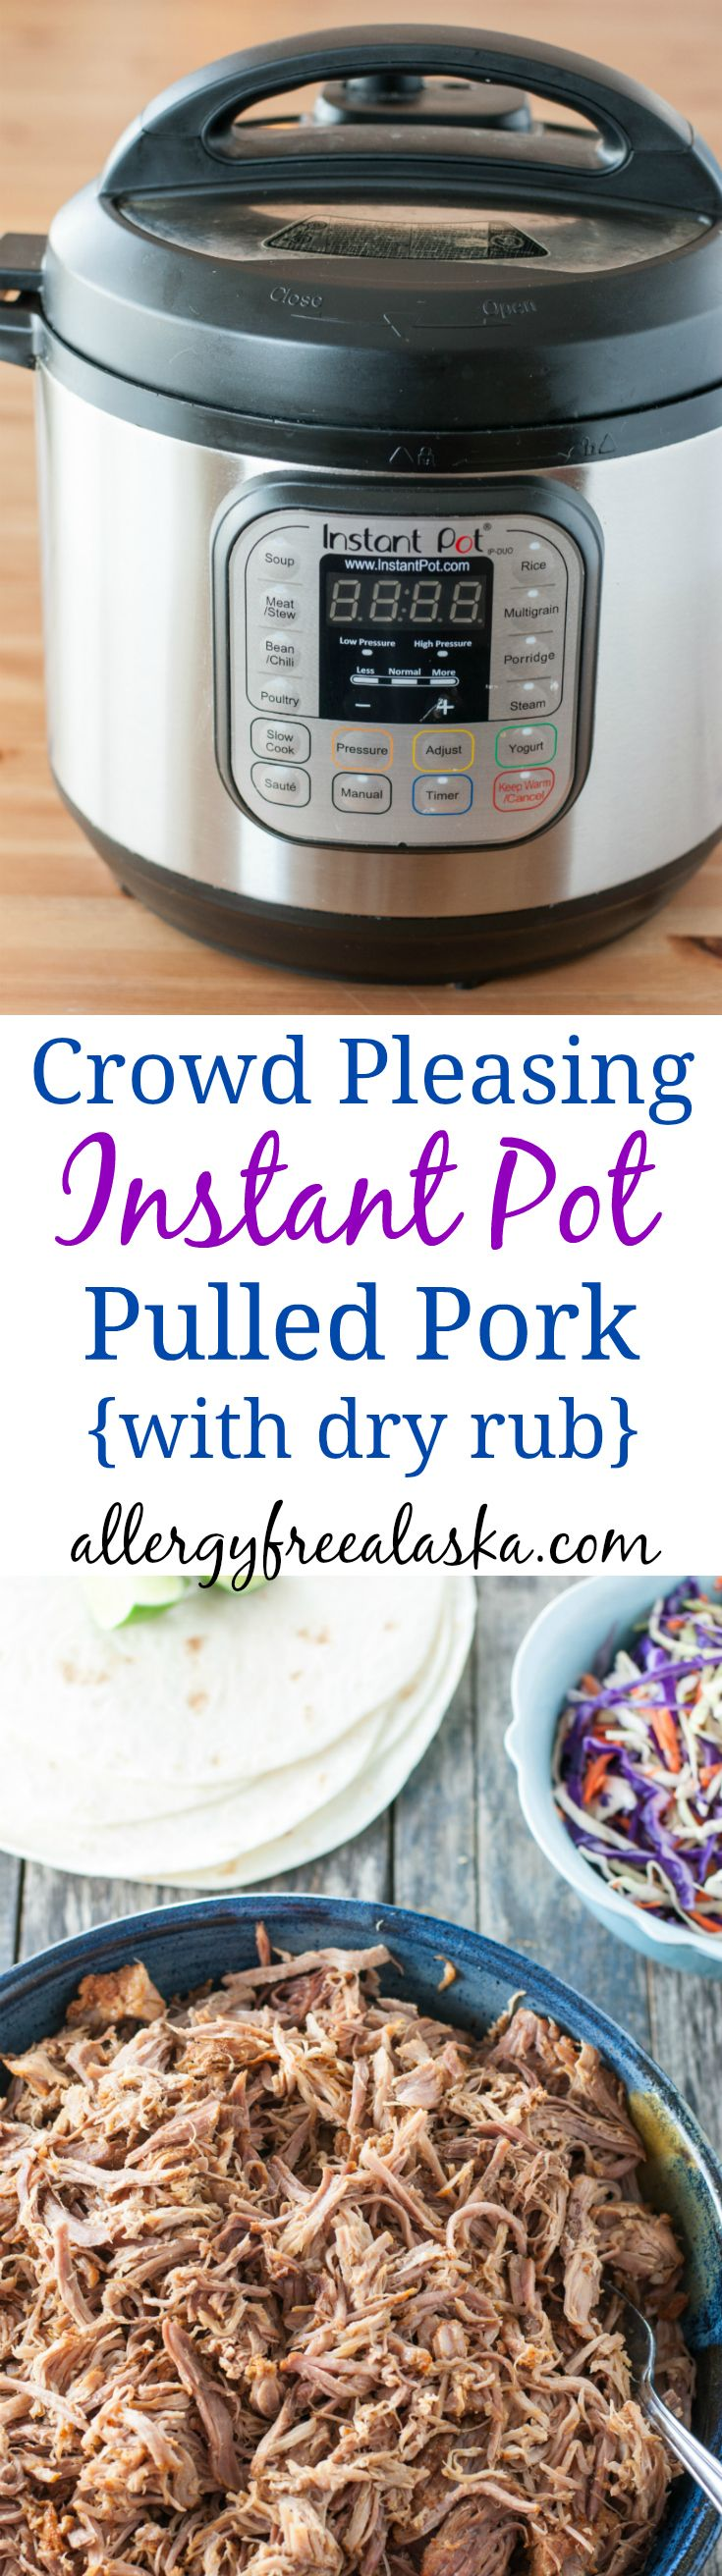 This Crowd Pleasing Instant Pot Pulled Pork with Dry Rub is very flavorful & incredibly juicy. It feeds a lot of people on the cheap (no BBQ sauce needed!).